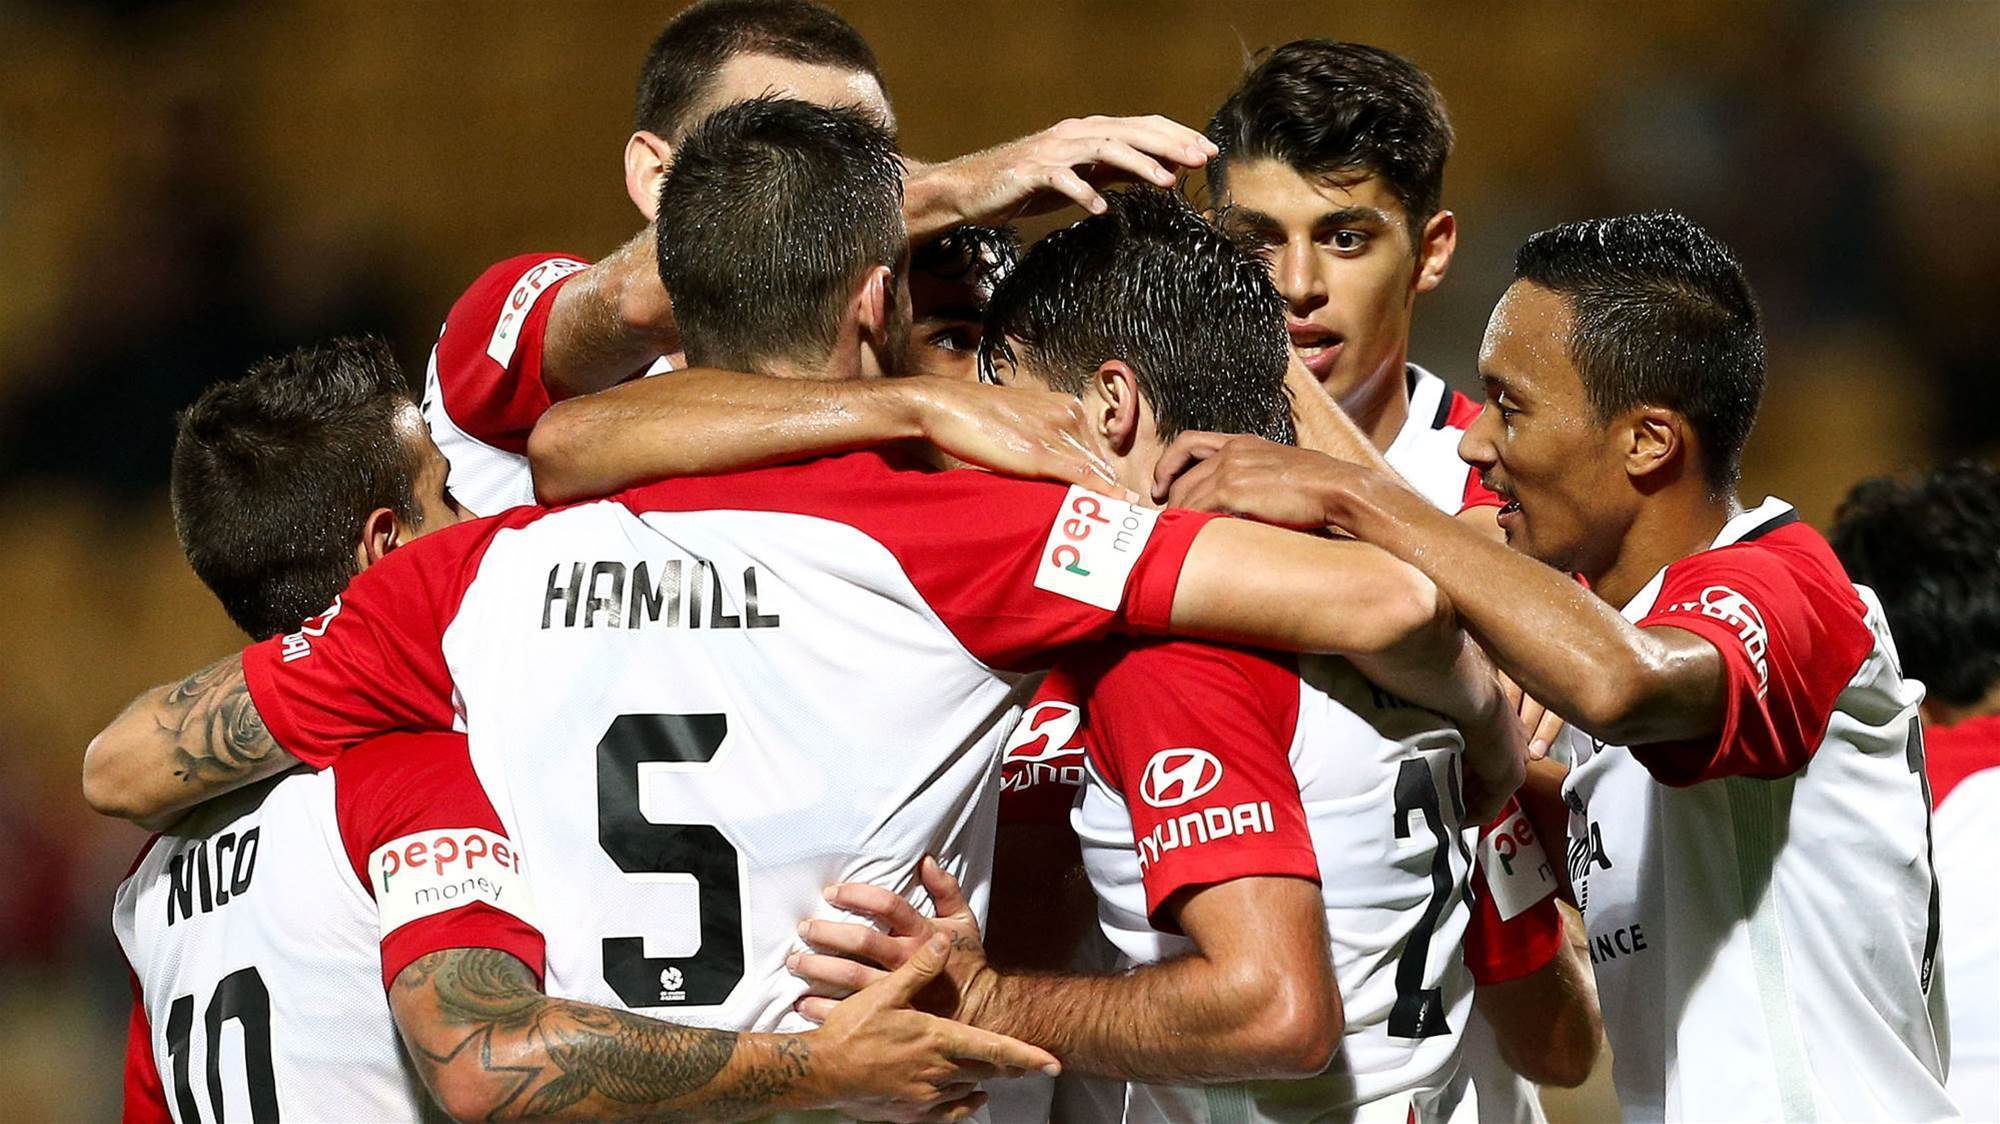 The best and worst from Round 18